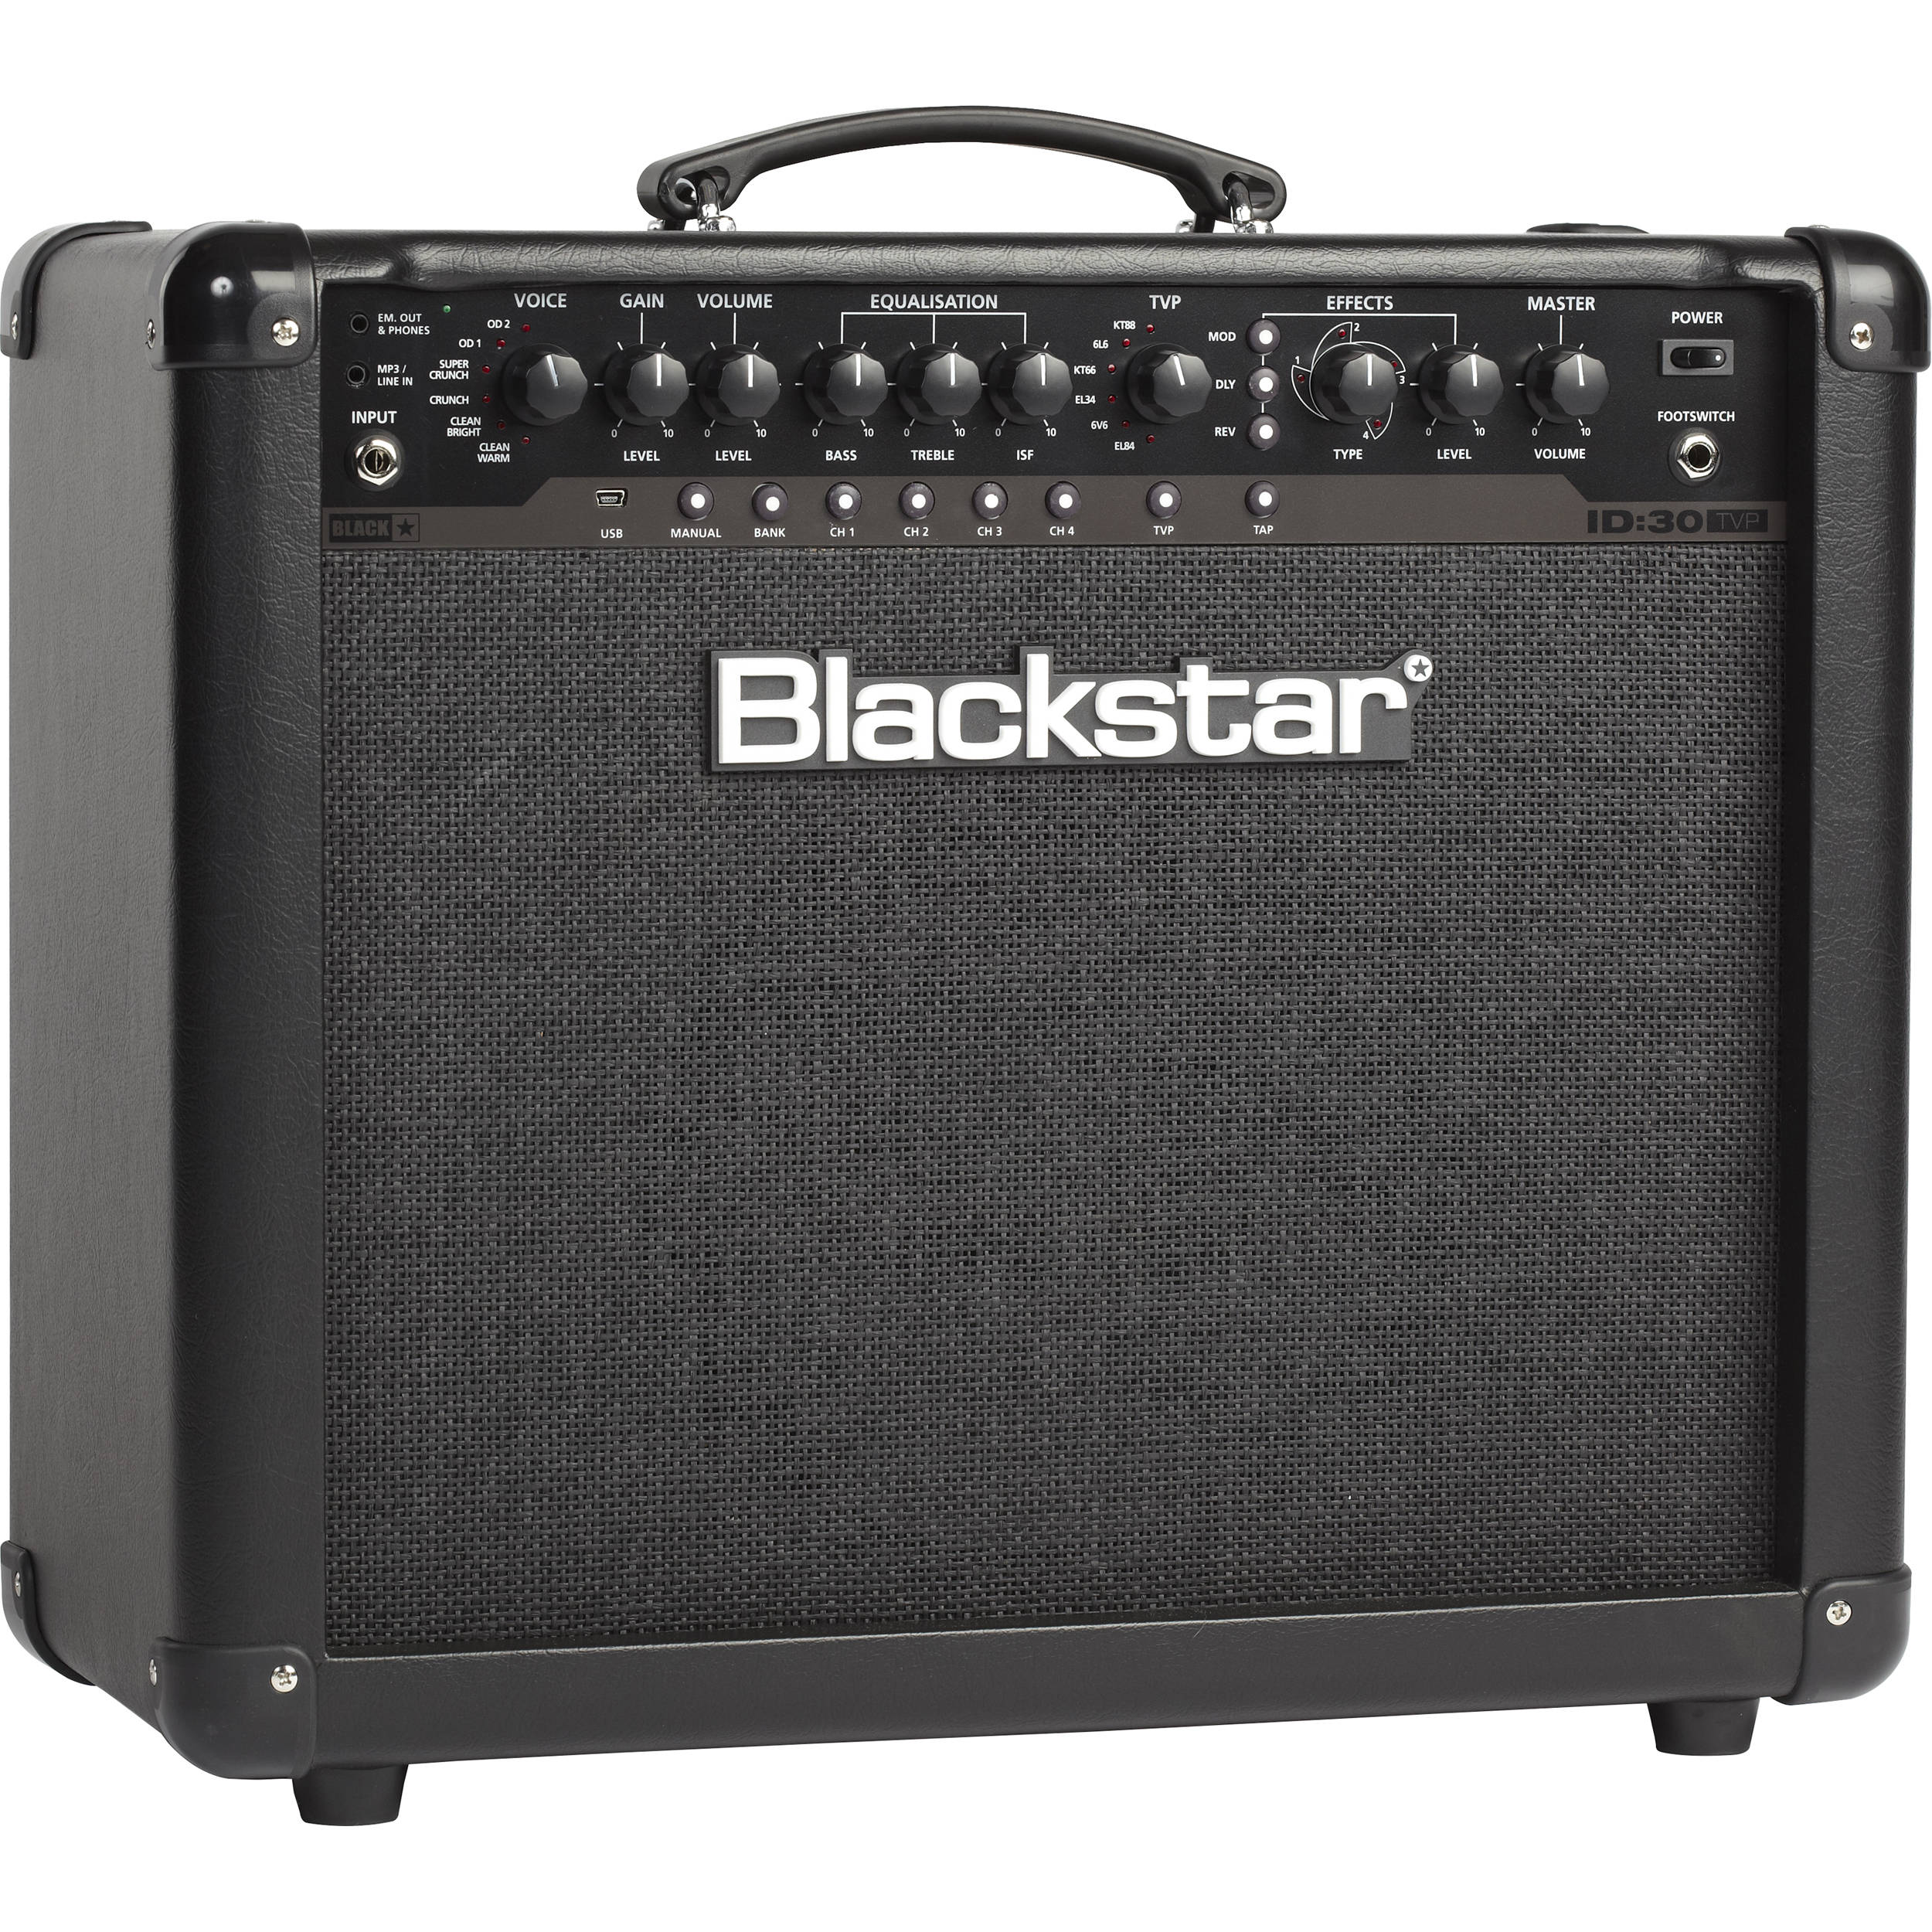 blackstar id 30 tvp 30w programmable combo amplifier. Black Bedroom Furniture Sets. Home Design Ideas